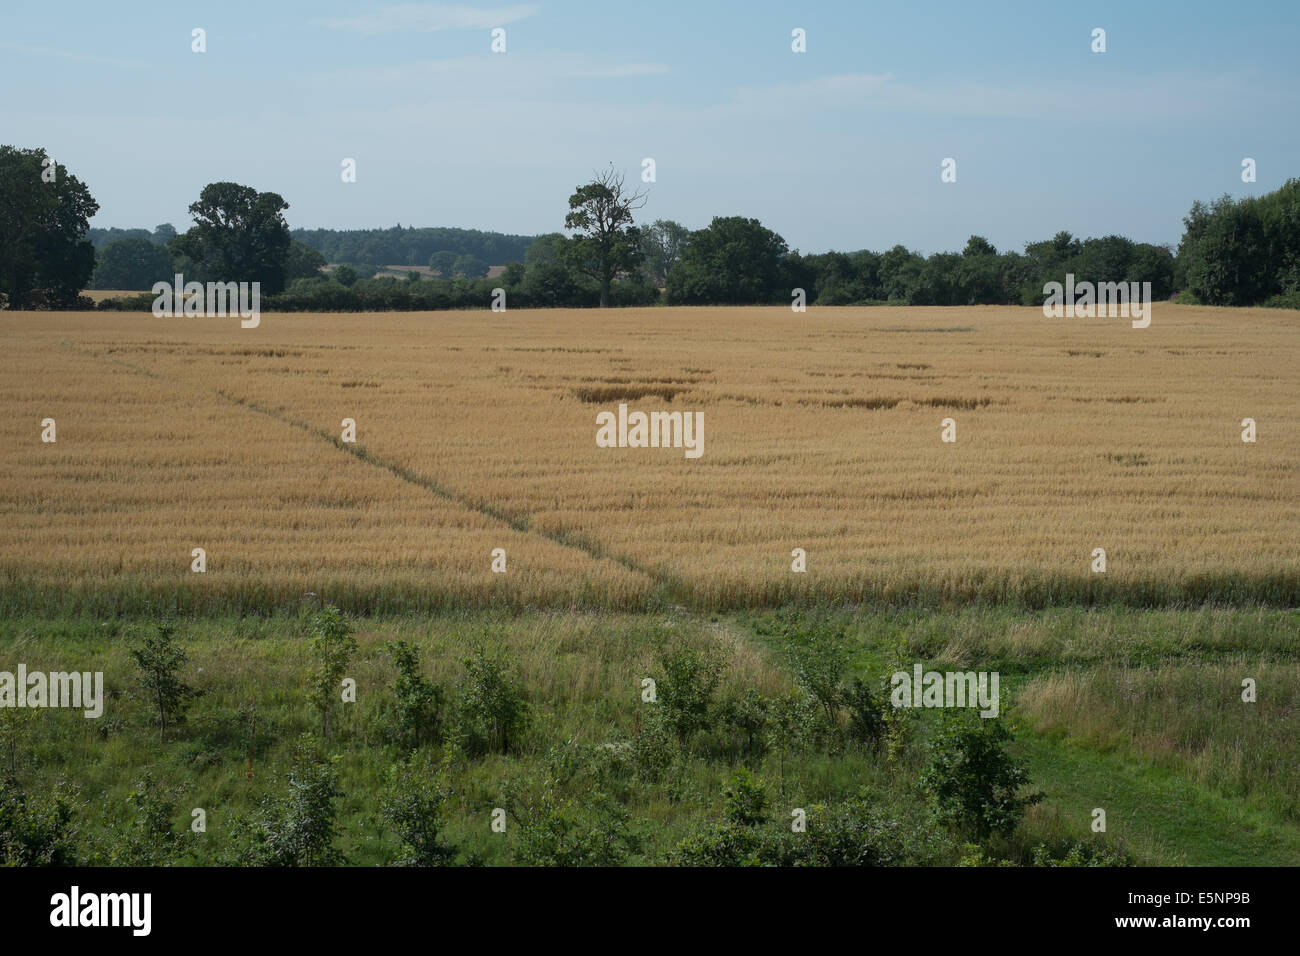 Countrysides, hay meadow - Stock Image